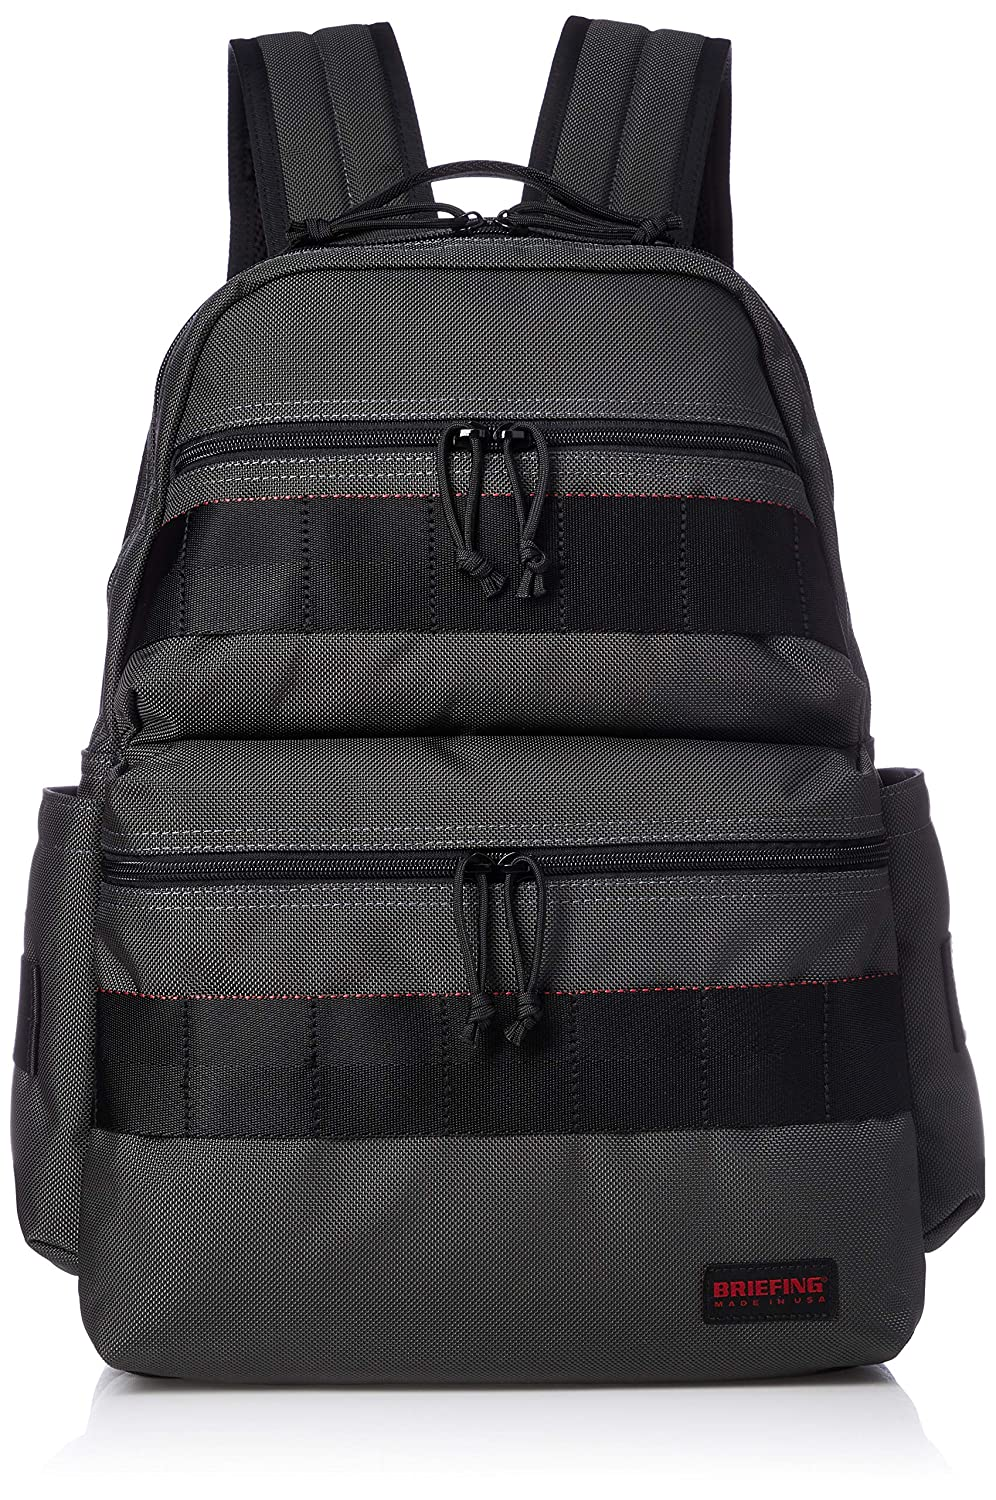 BRIEFING MADE IN USA rucksack BRM191P04 BRM191P04-010